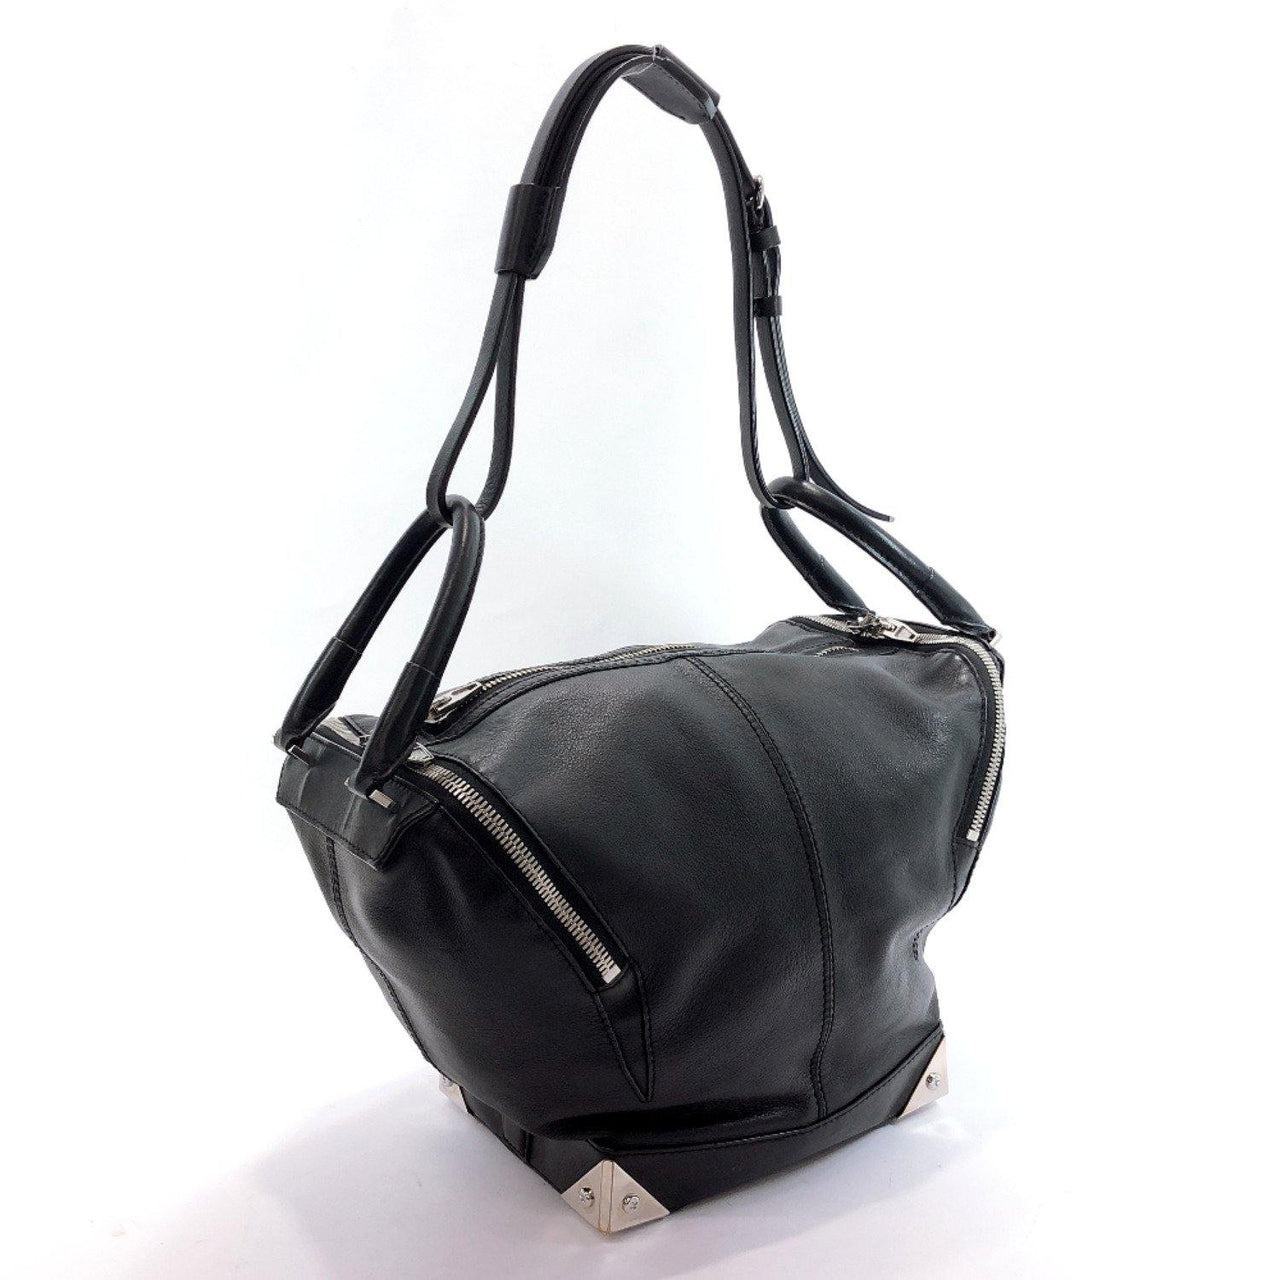 Alexander Wang Shoulder Bag 2way leather black SilverHardware Women Used